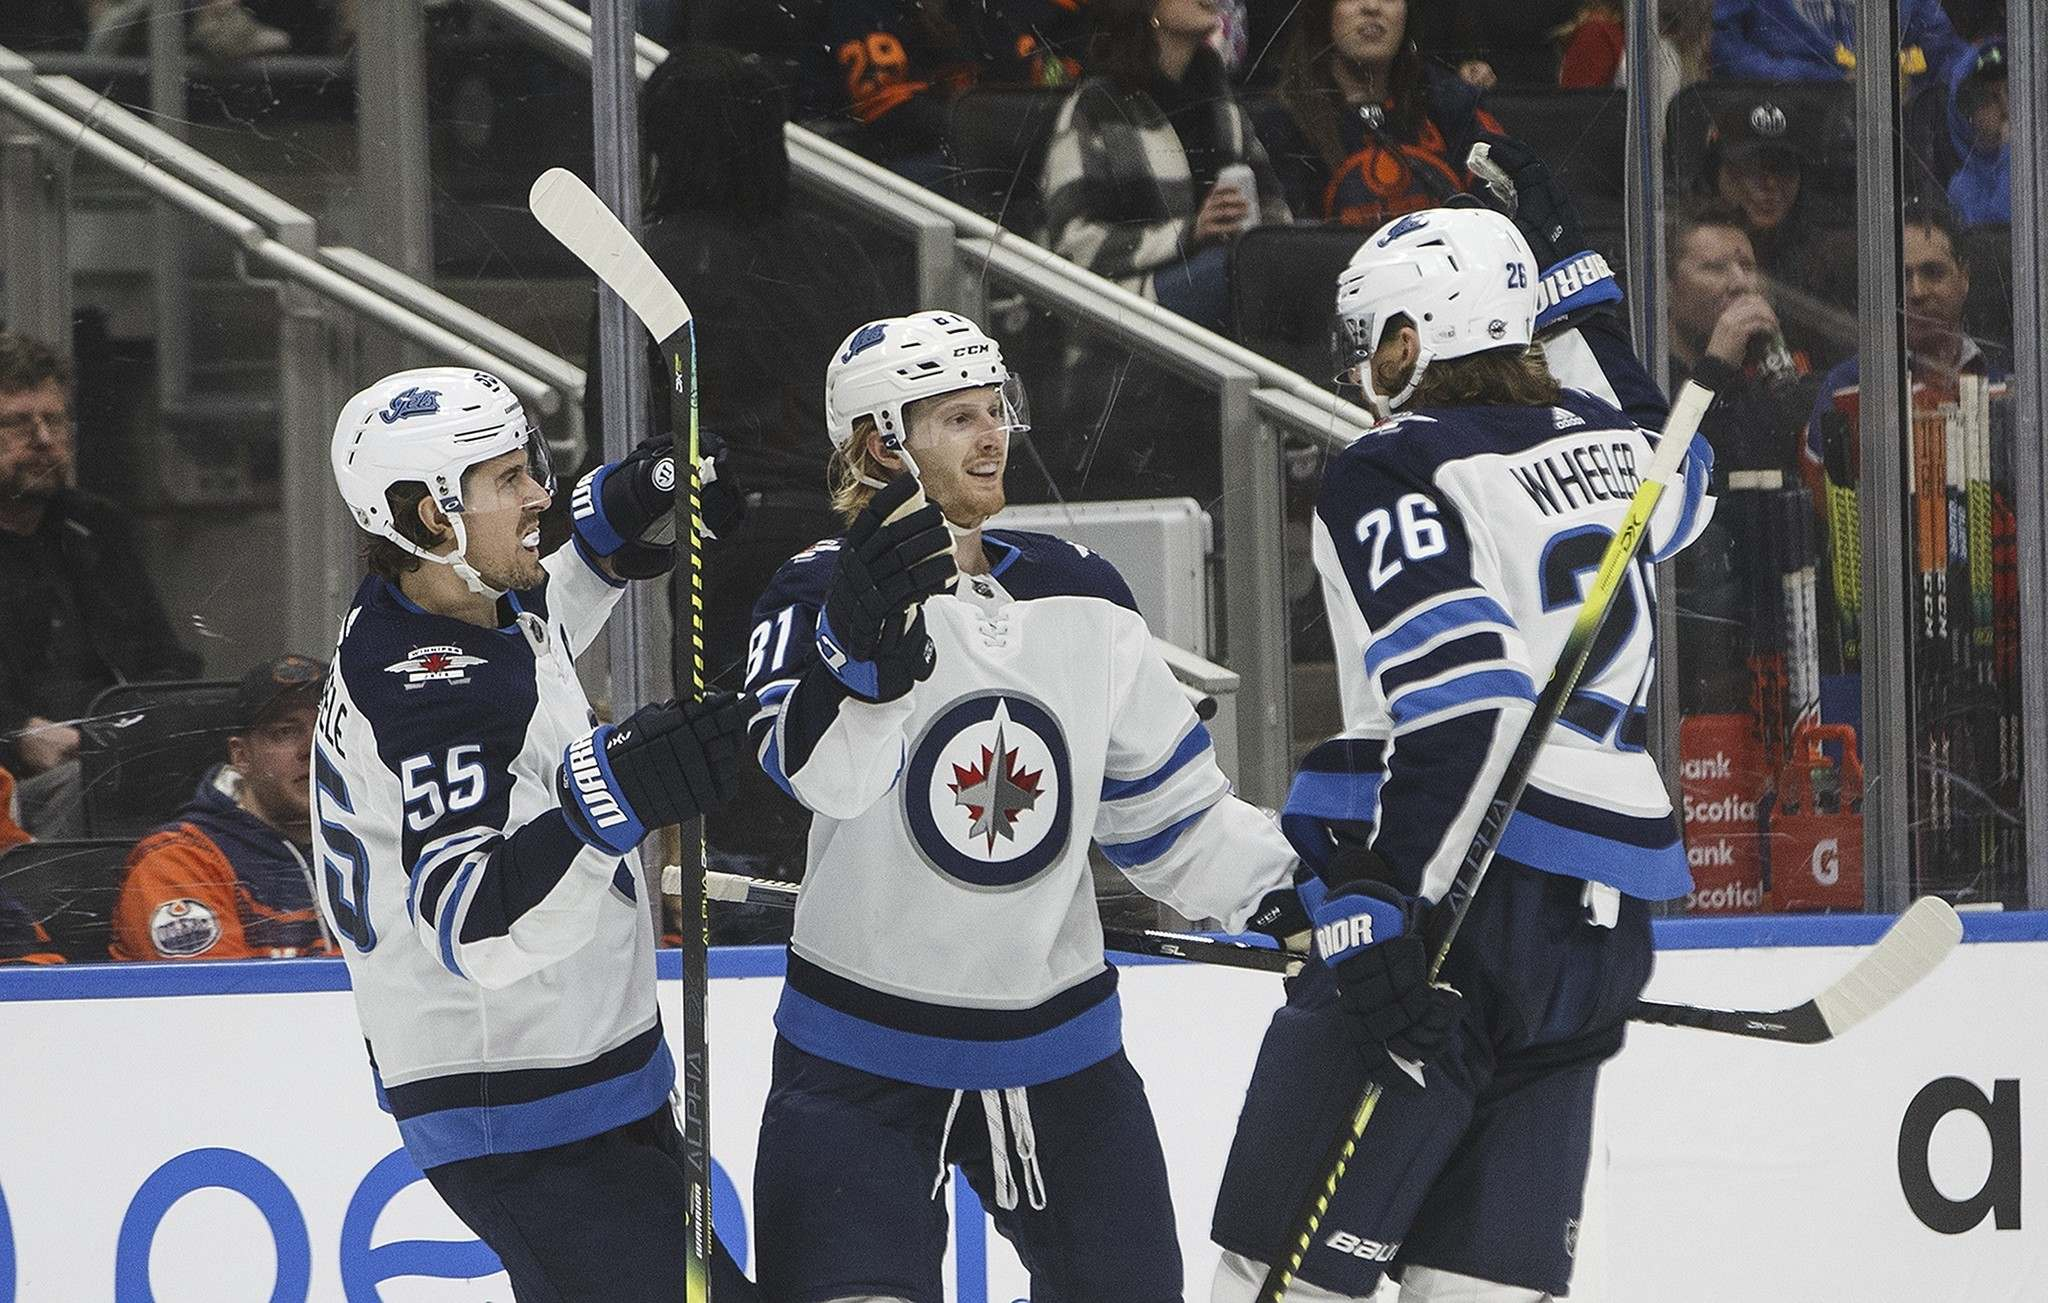 Mark Scheifele, Kyle Connor, and Blake Wheeler are among the Jets who will be put through their paces Monday morning to prepare for the 24-team Stanley Cup tournament that starts Aug. 1. (Jason Franson / The Canadian Press files)</p>